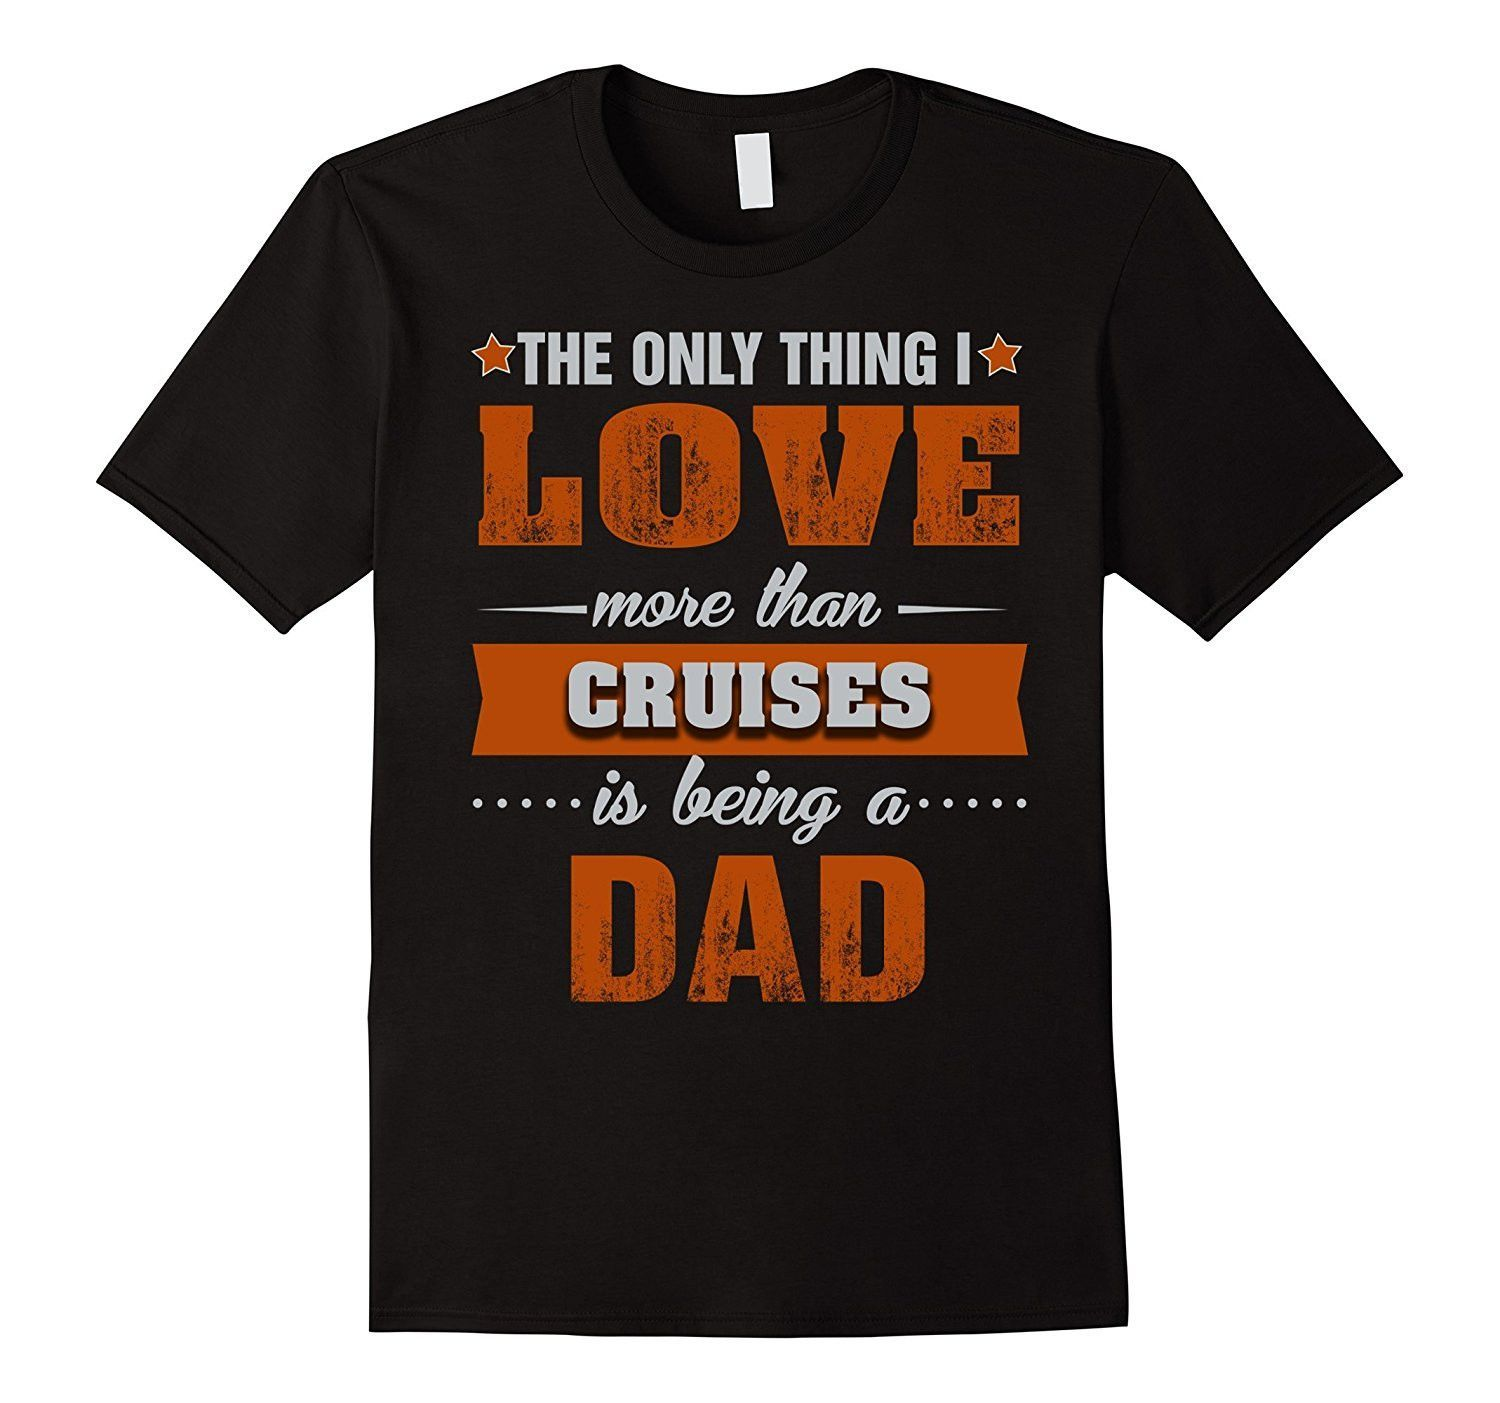 Cruises Shirts Being a Cruises Dad T-shirt